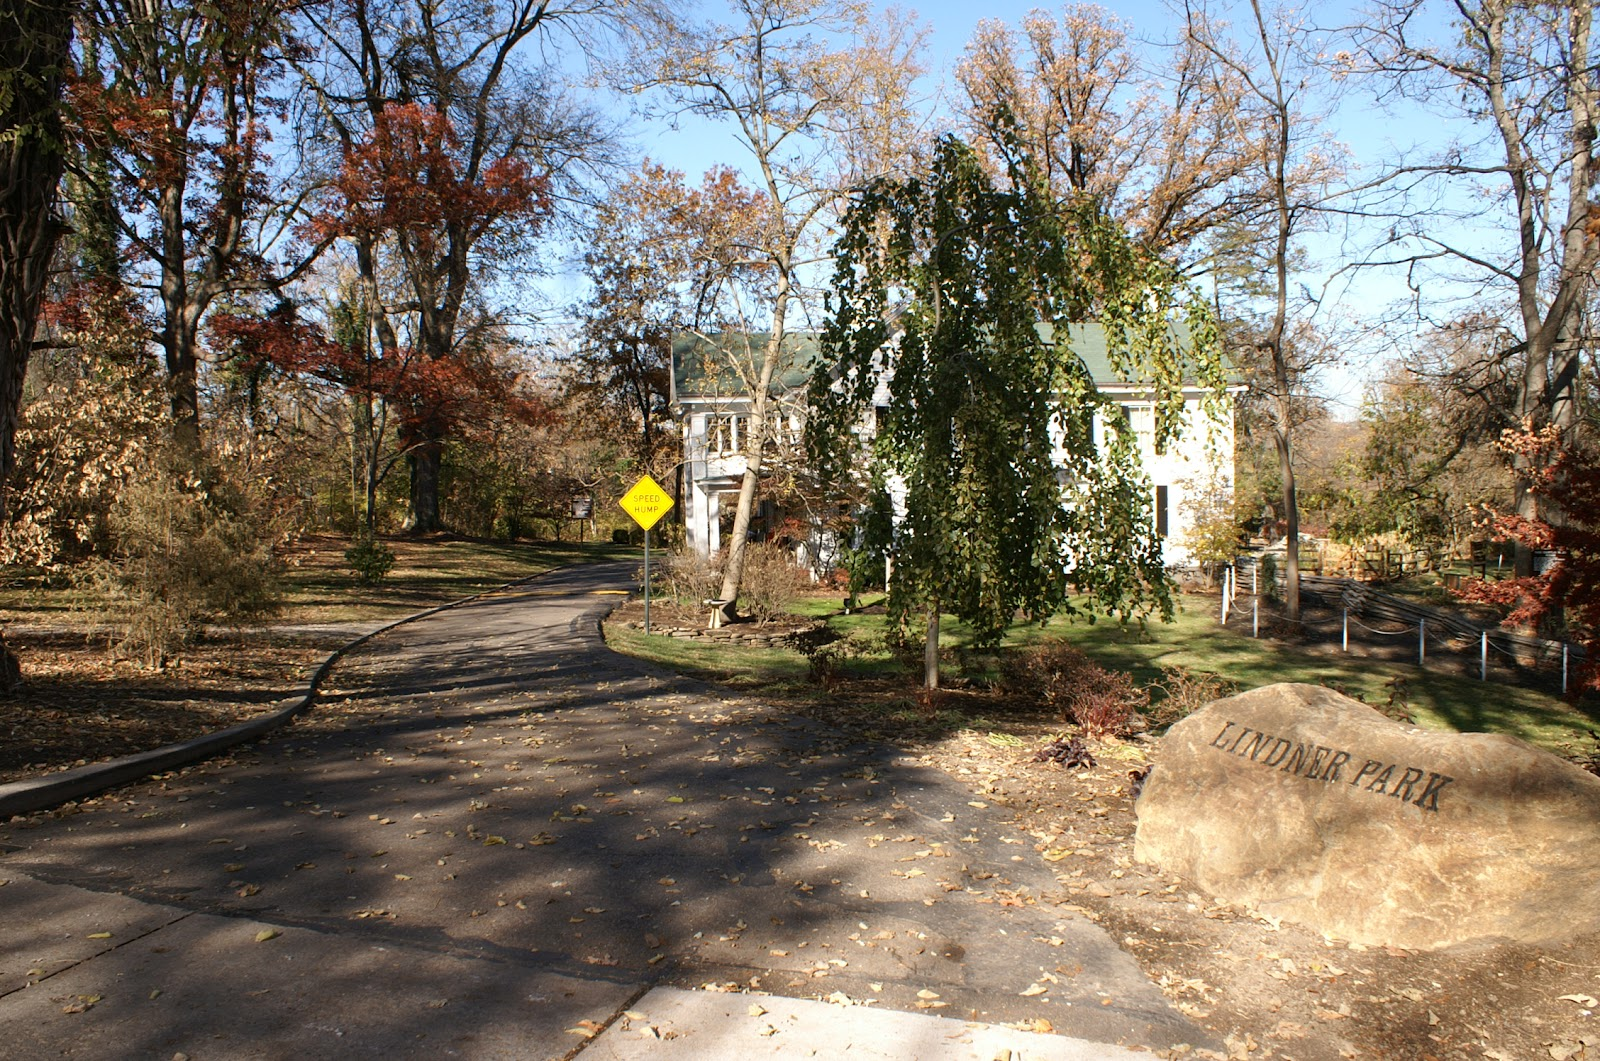 Two Tykes on a Hike: Trail Tale 1: Lindner Park, McCullough Estate ...